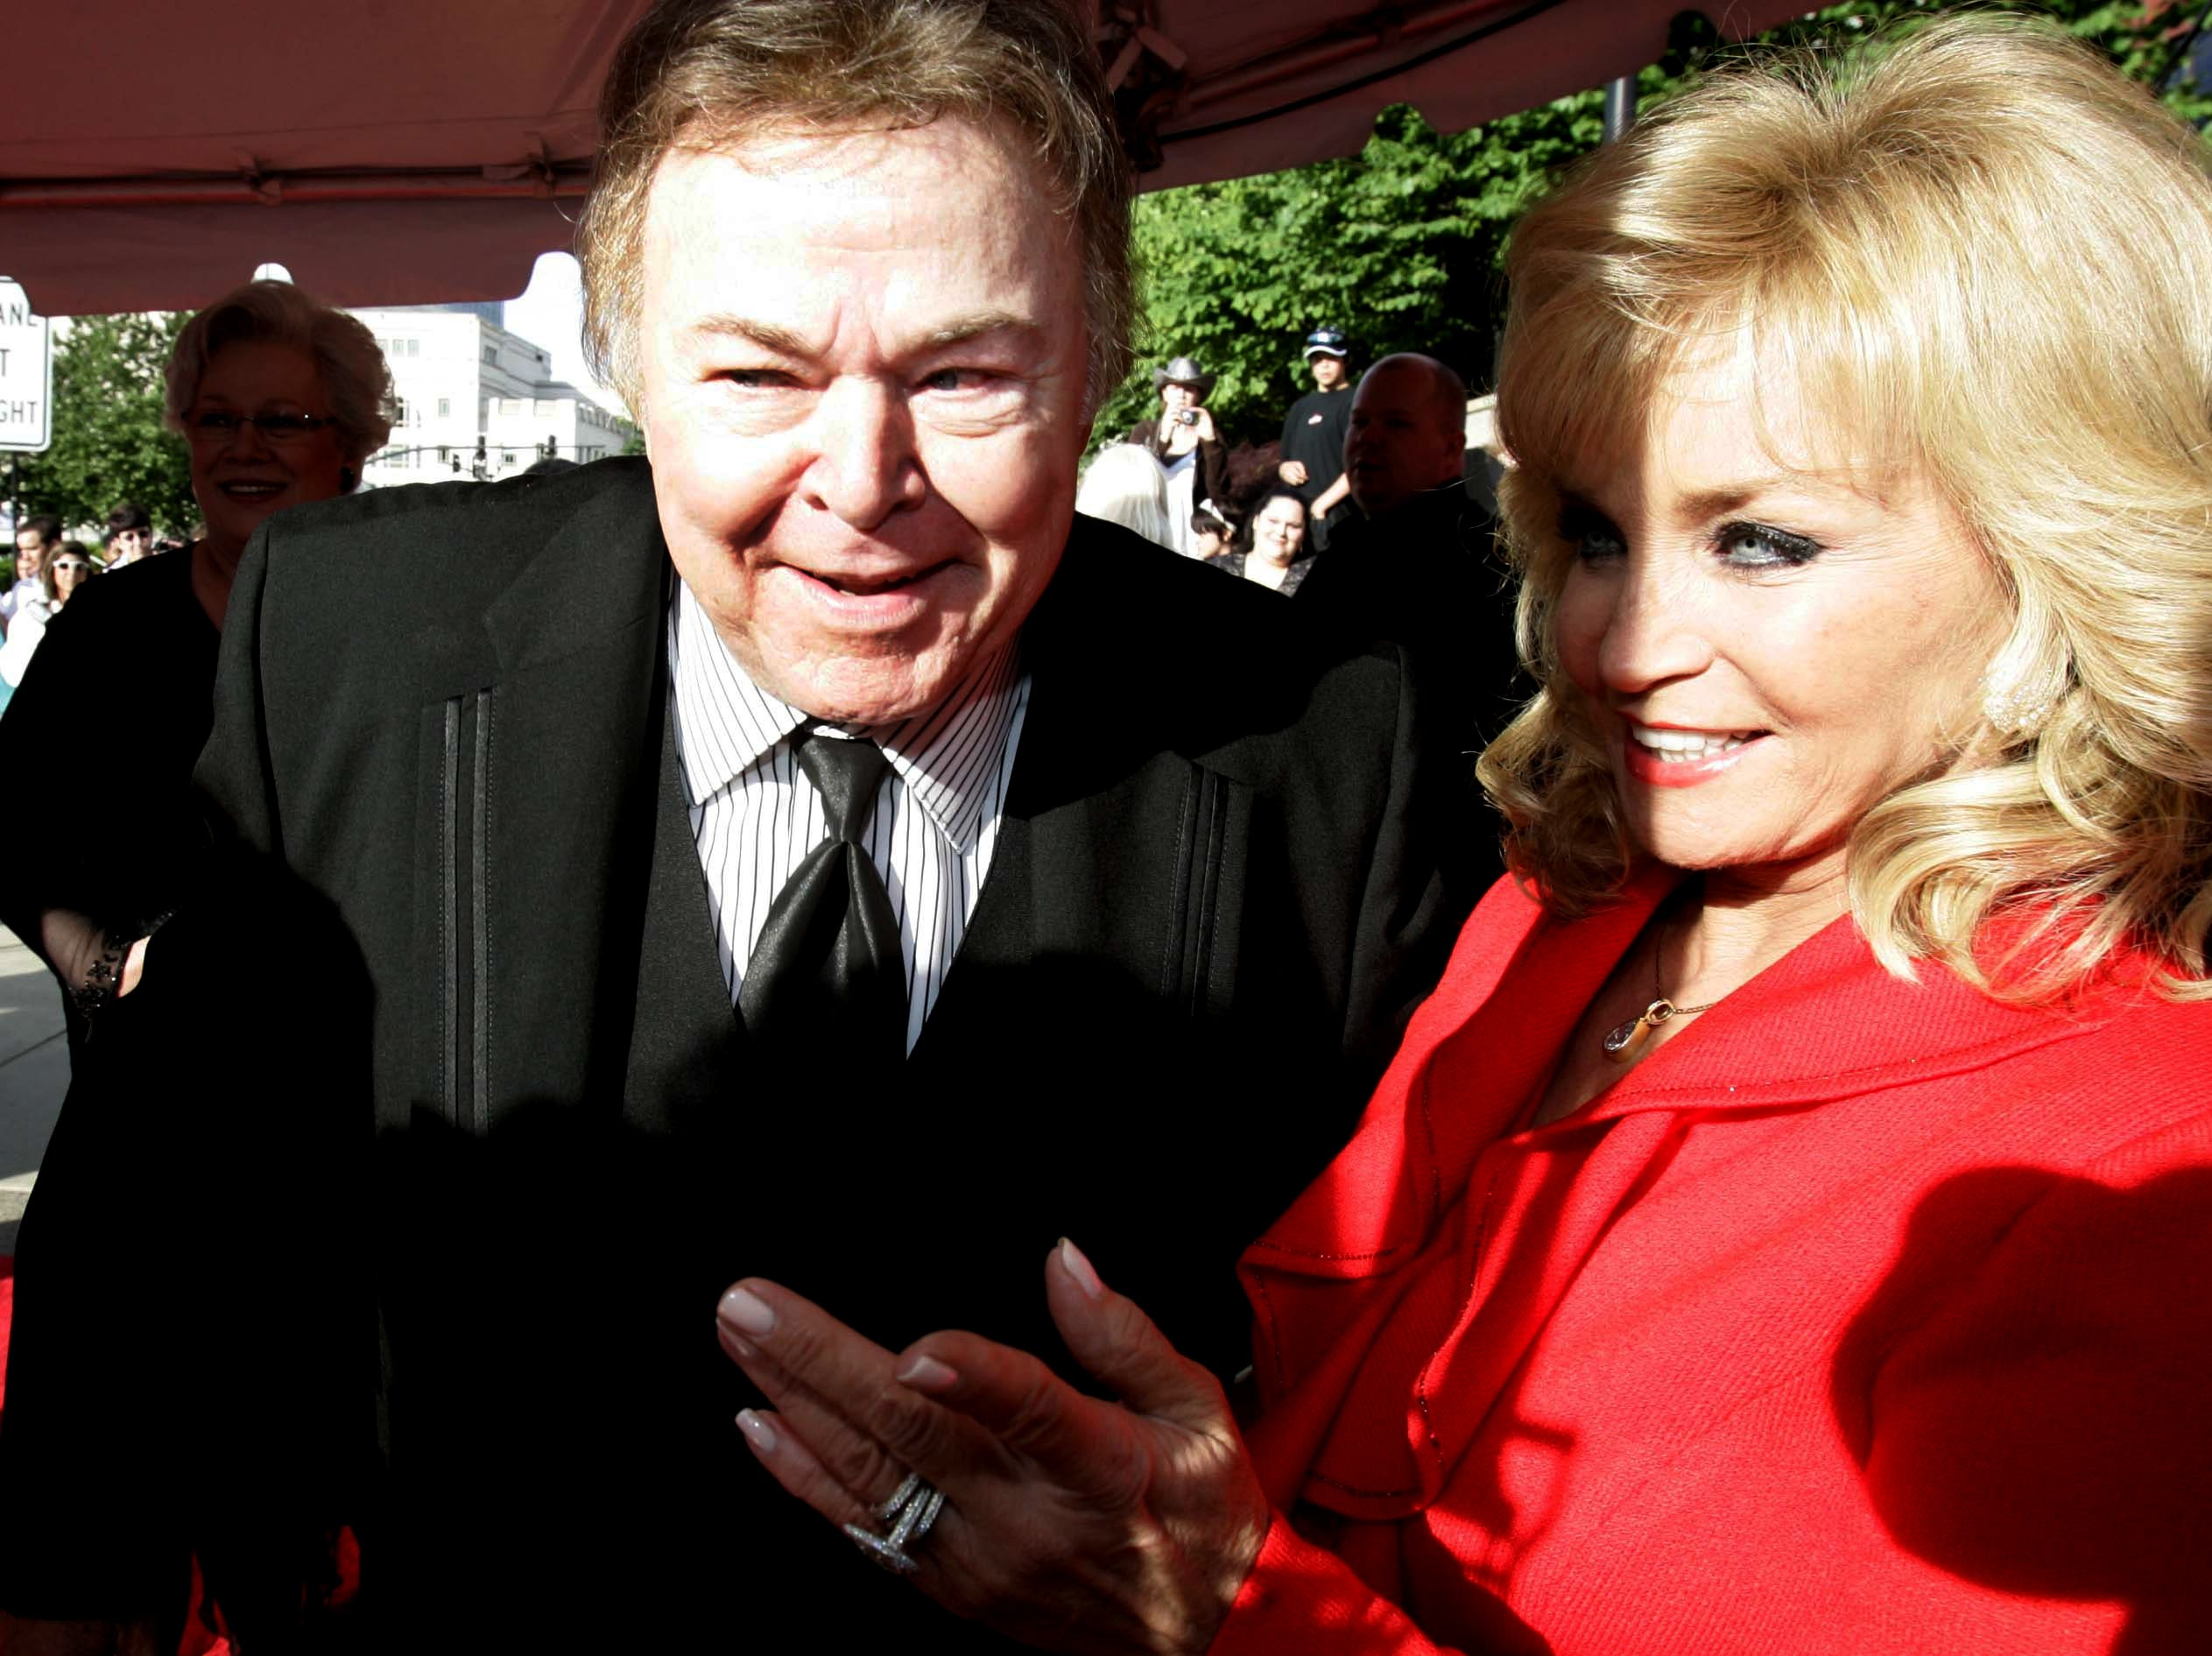 Roy Clark and Barbara Mandrell share a moment on the red carpet during the Country Music Hall of Fame's Medallion Ceremony on May 17, 2009.